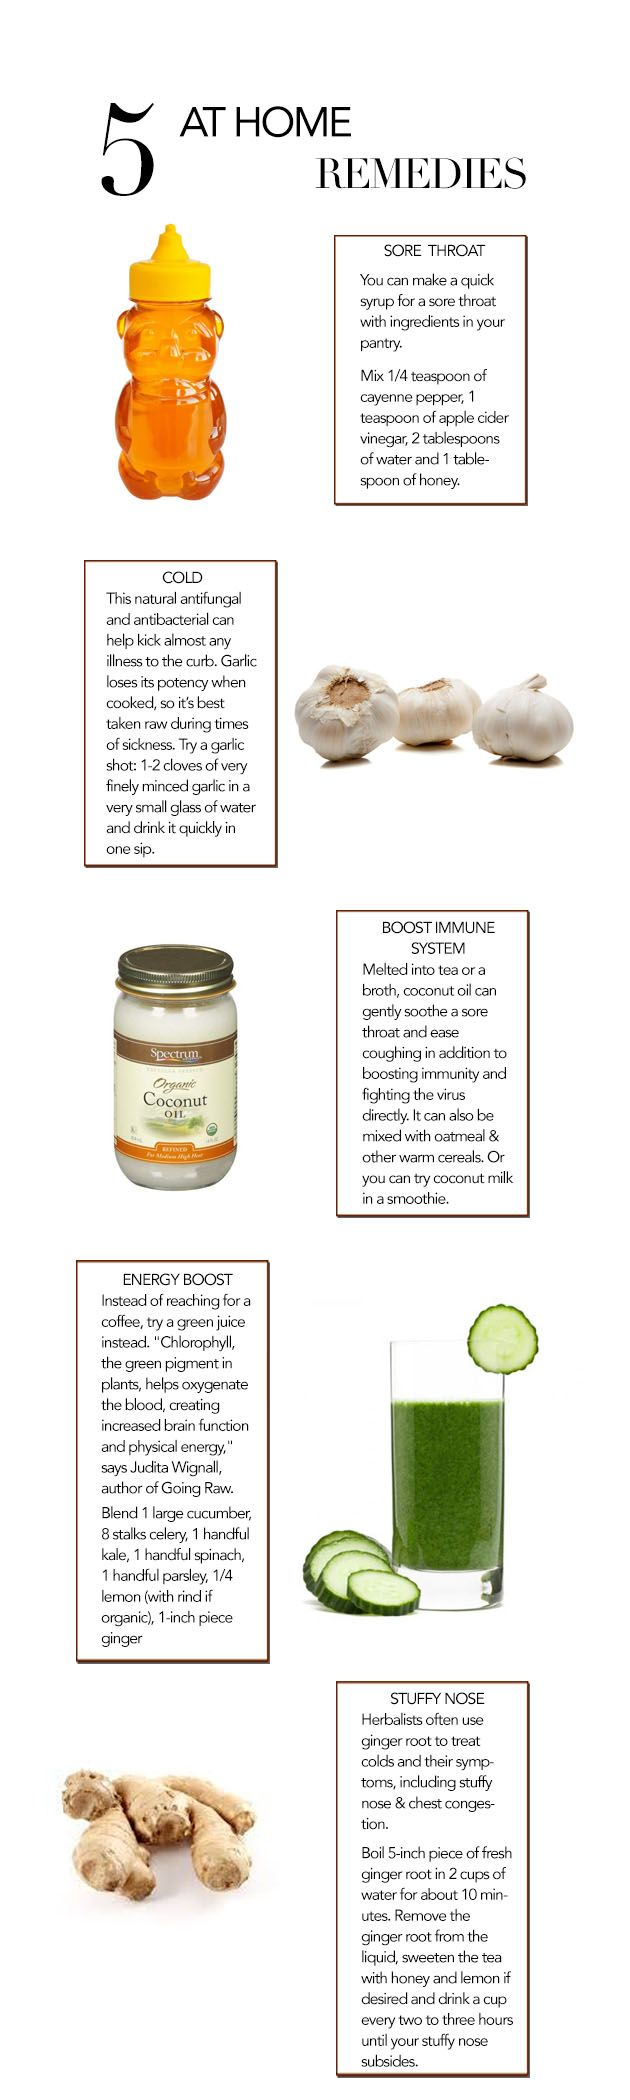 5 at home remedies for colds, flu, sore throat, & energy.